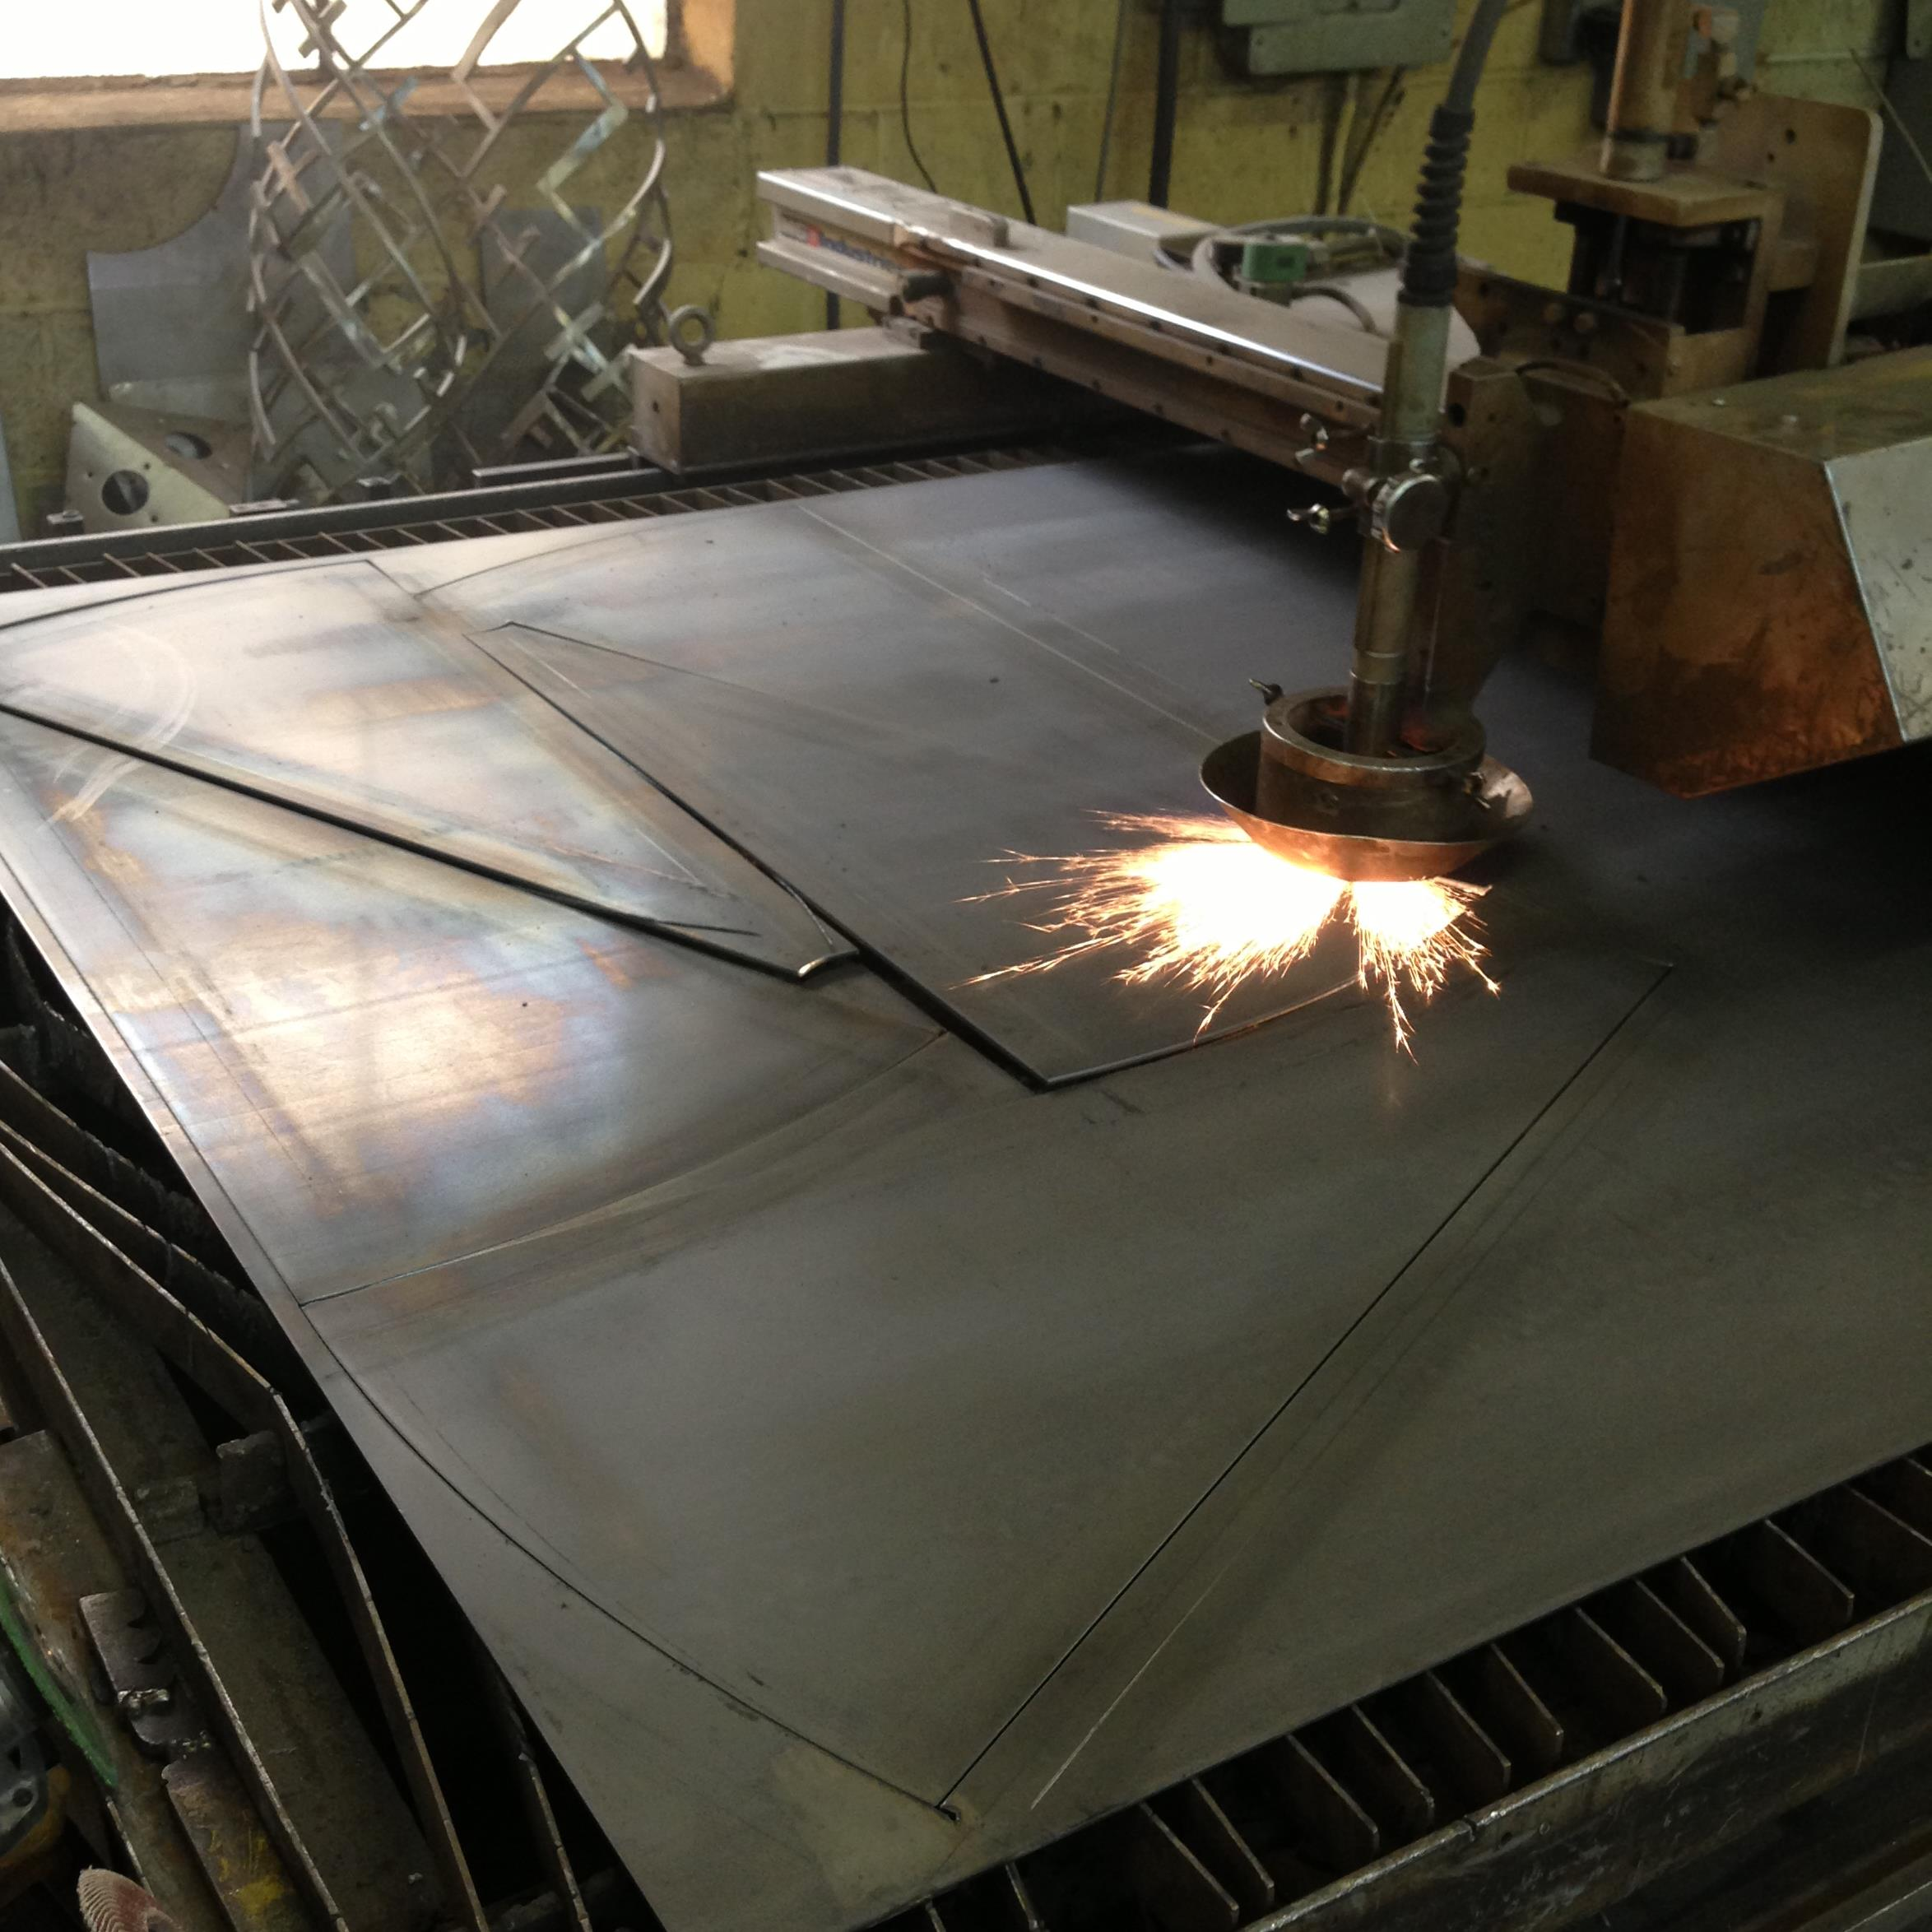 Plasma machine cutting stair treads from 11g steel